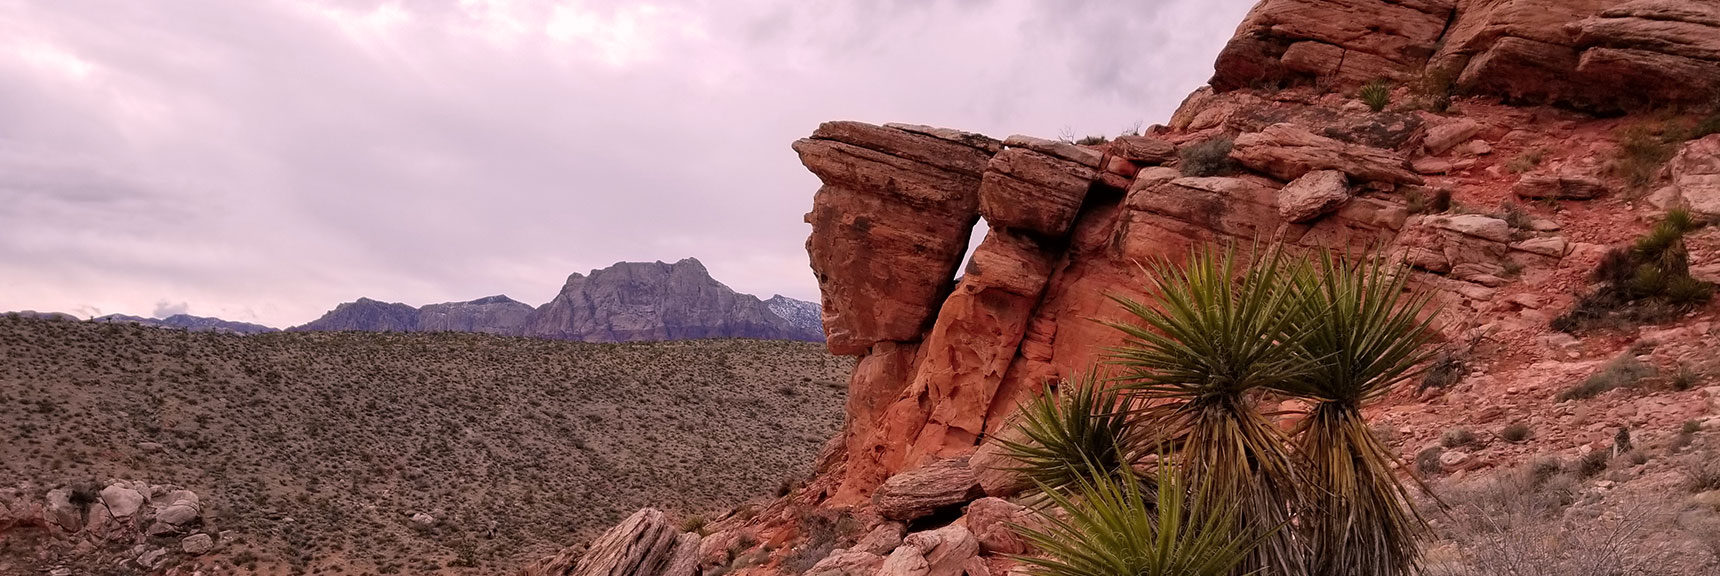 West Side of Calico Hills In Red Rock National Park Northwest of Las Vegas, Nevada